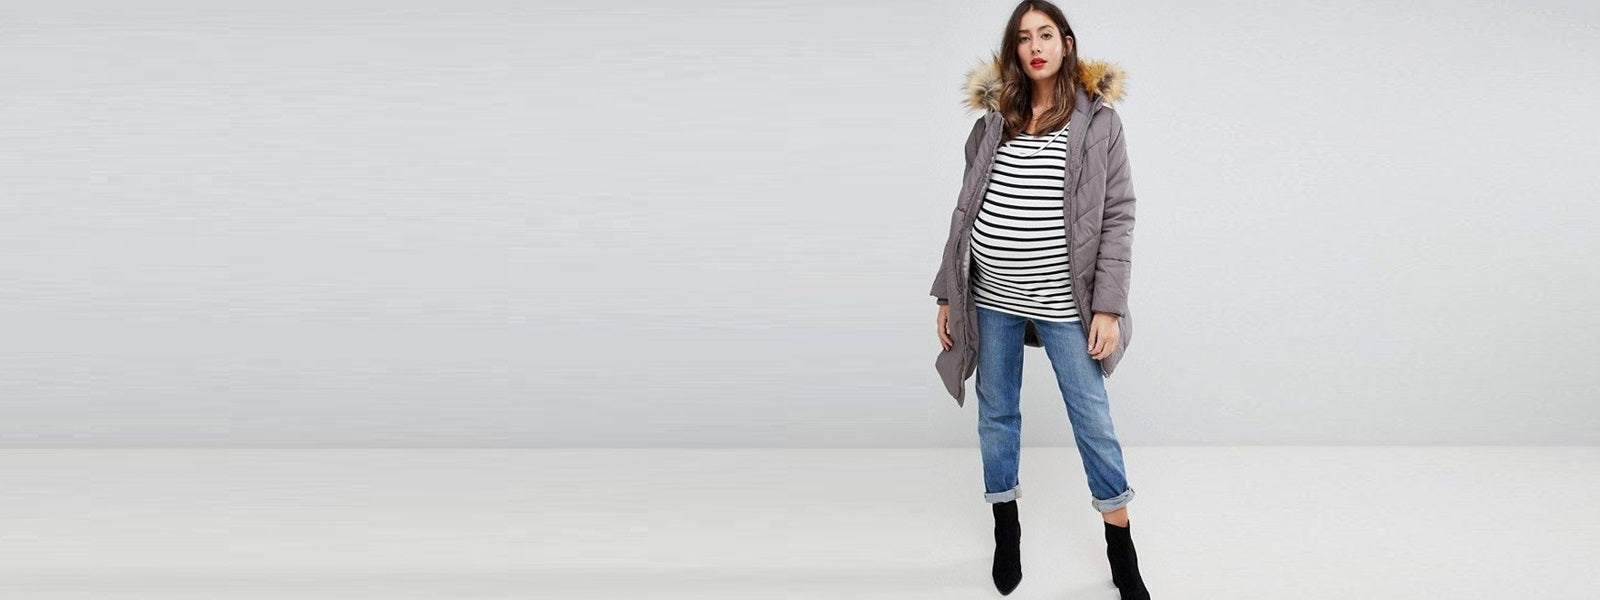 https://carrymaternity.ca/collections/modern-eternity